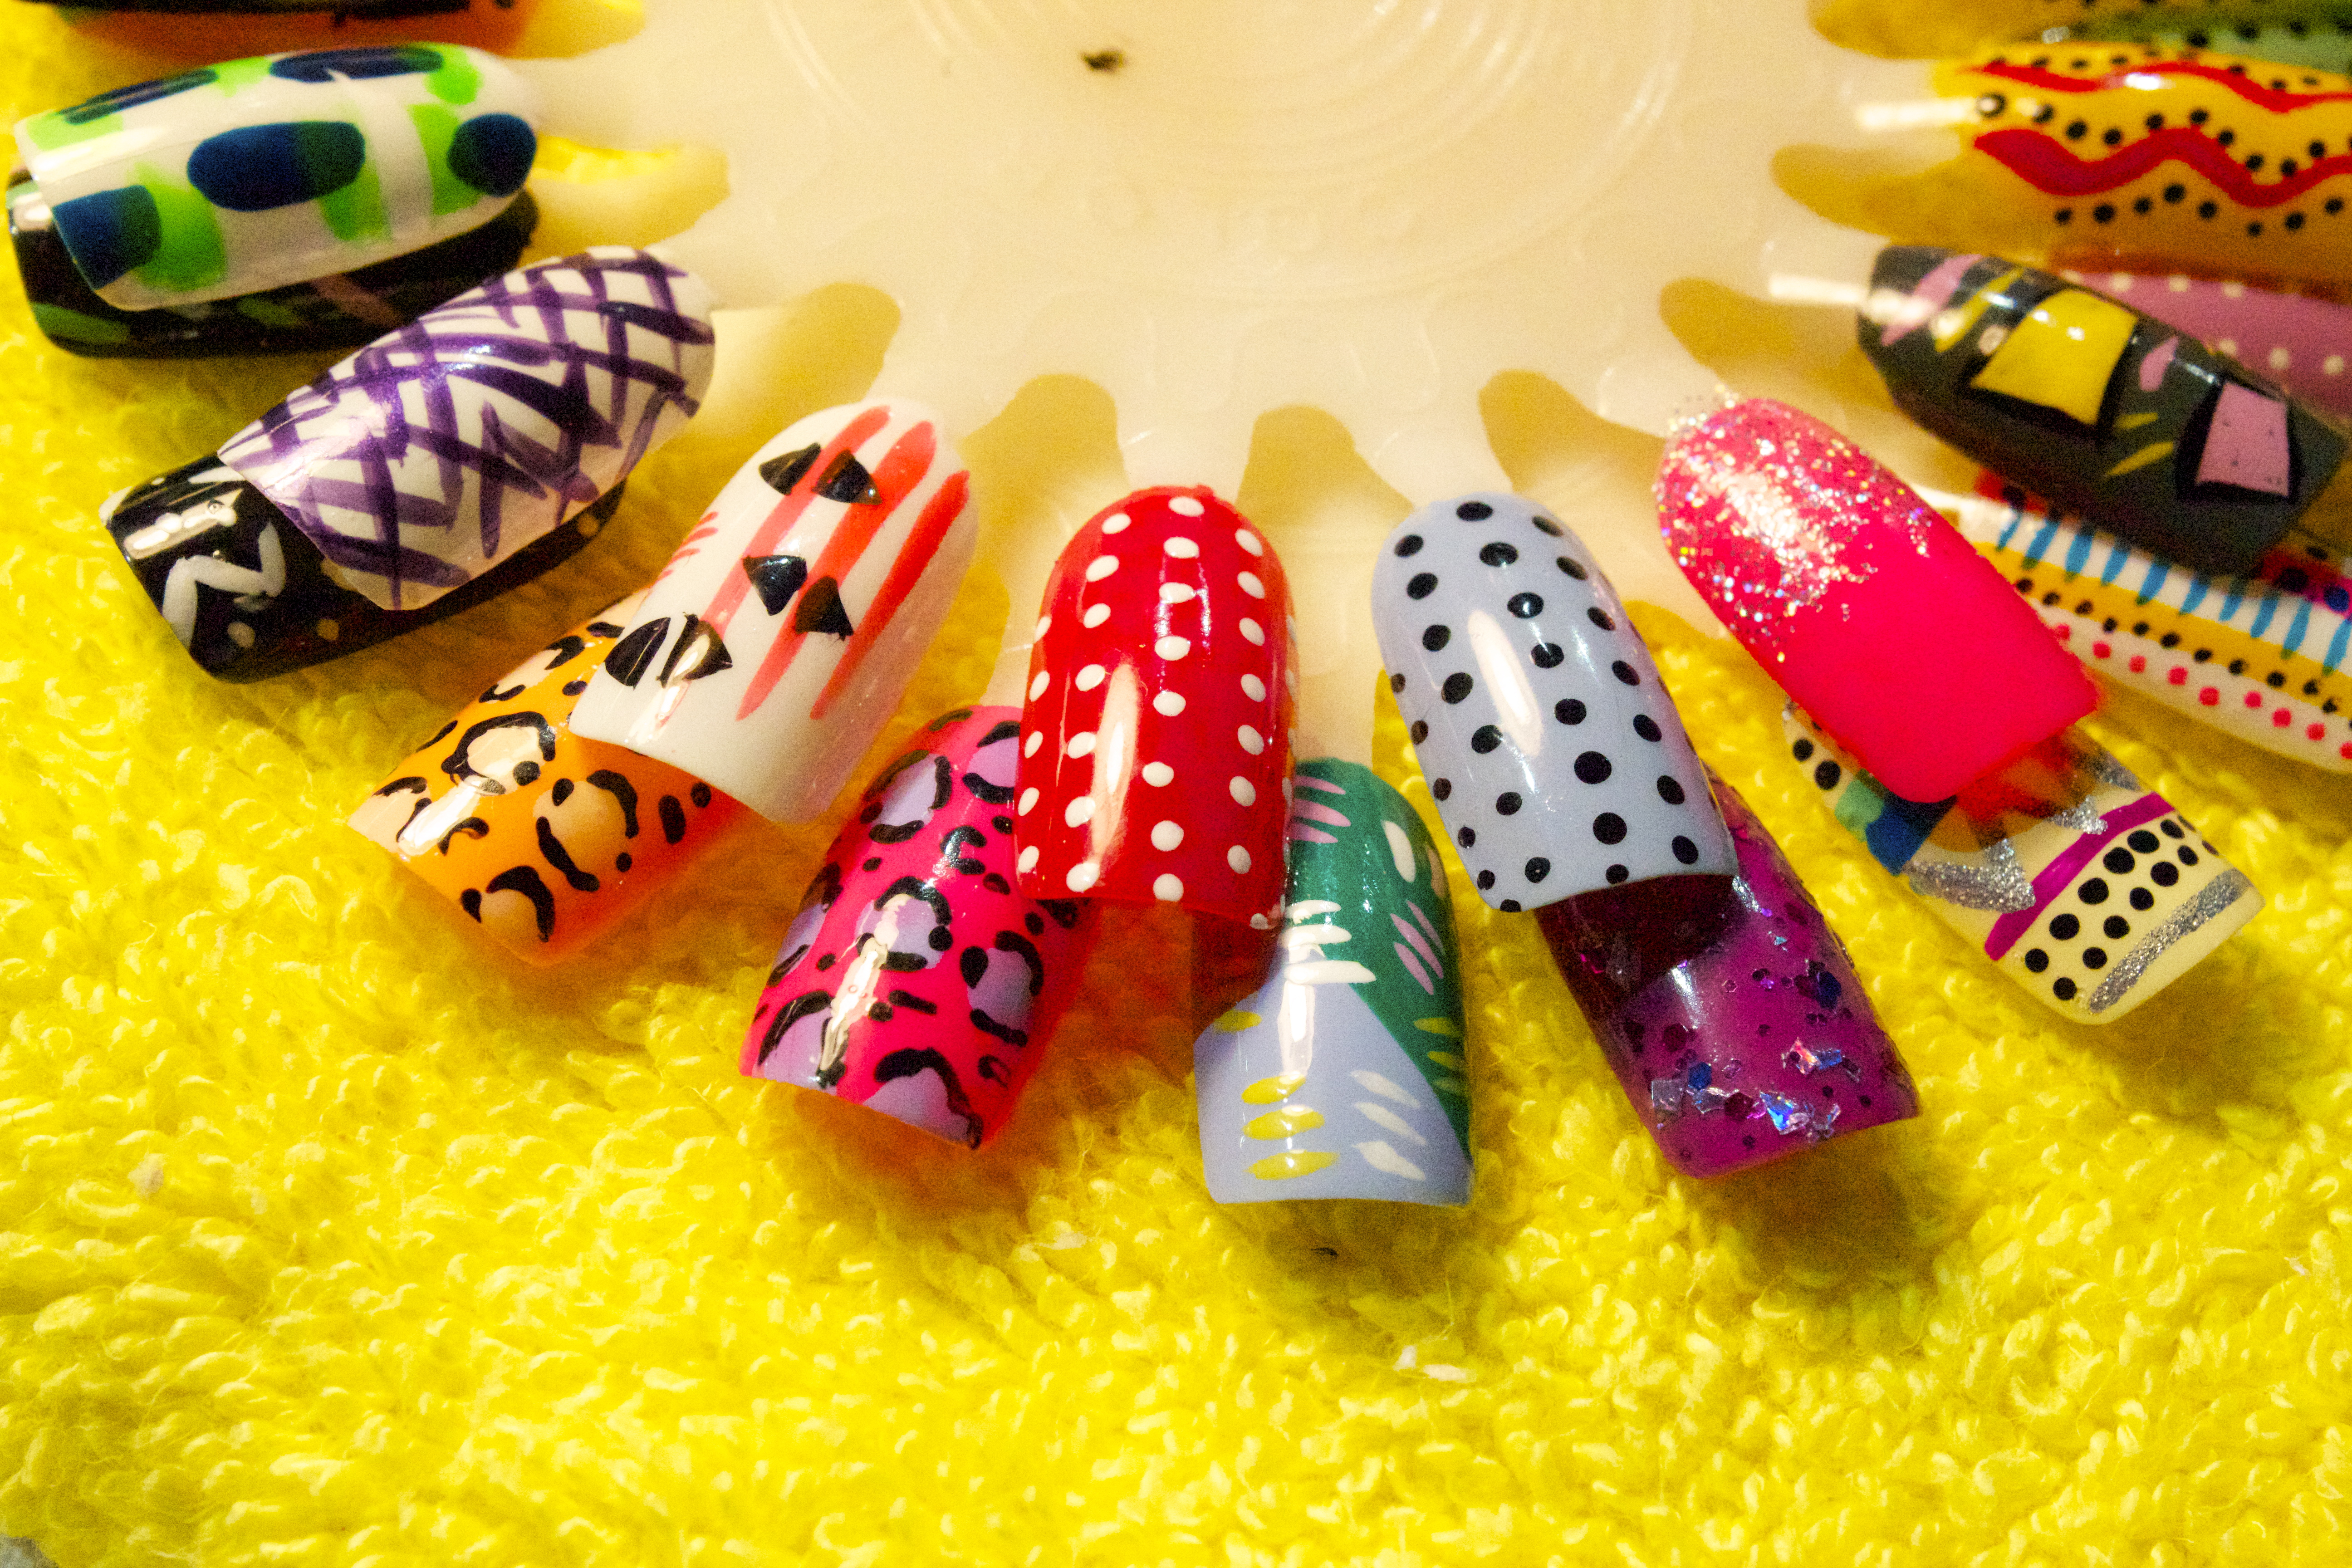 Diy Nail Art Workshop Brisbane Photography And Production Management